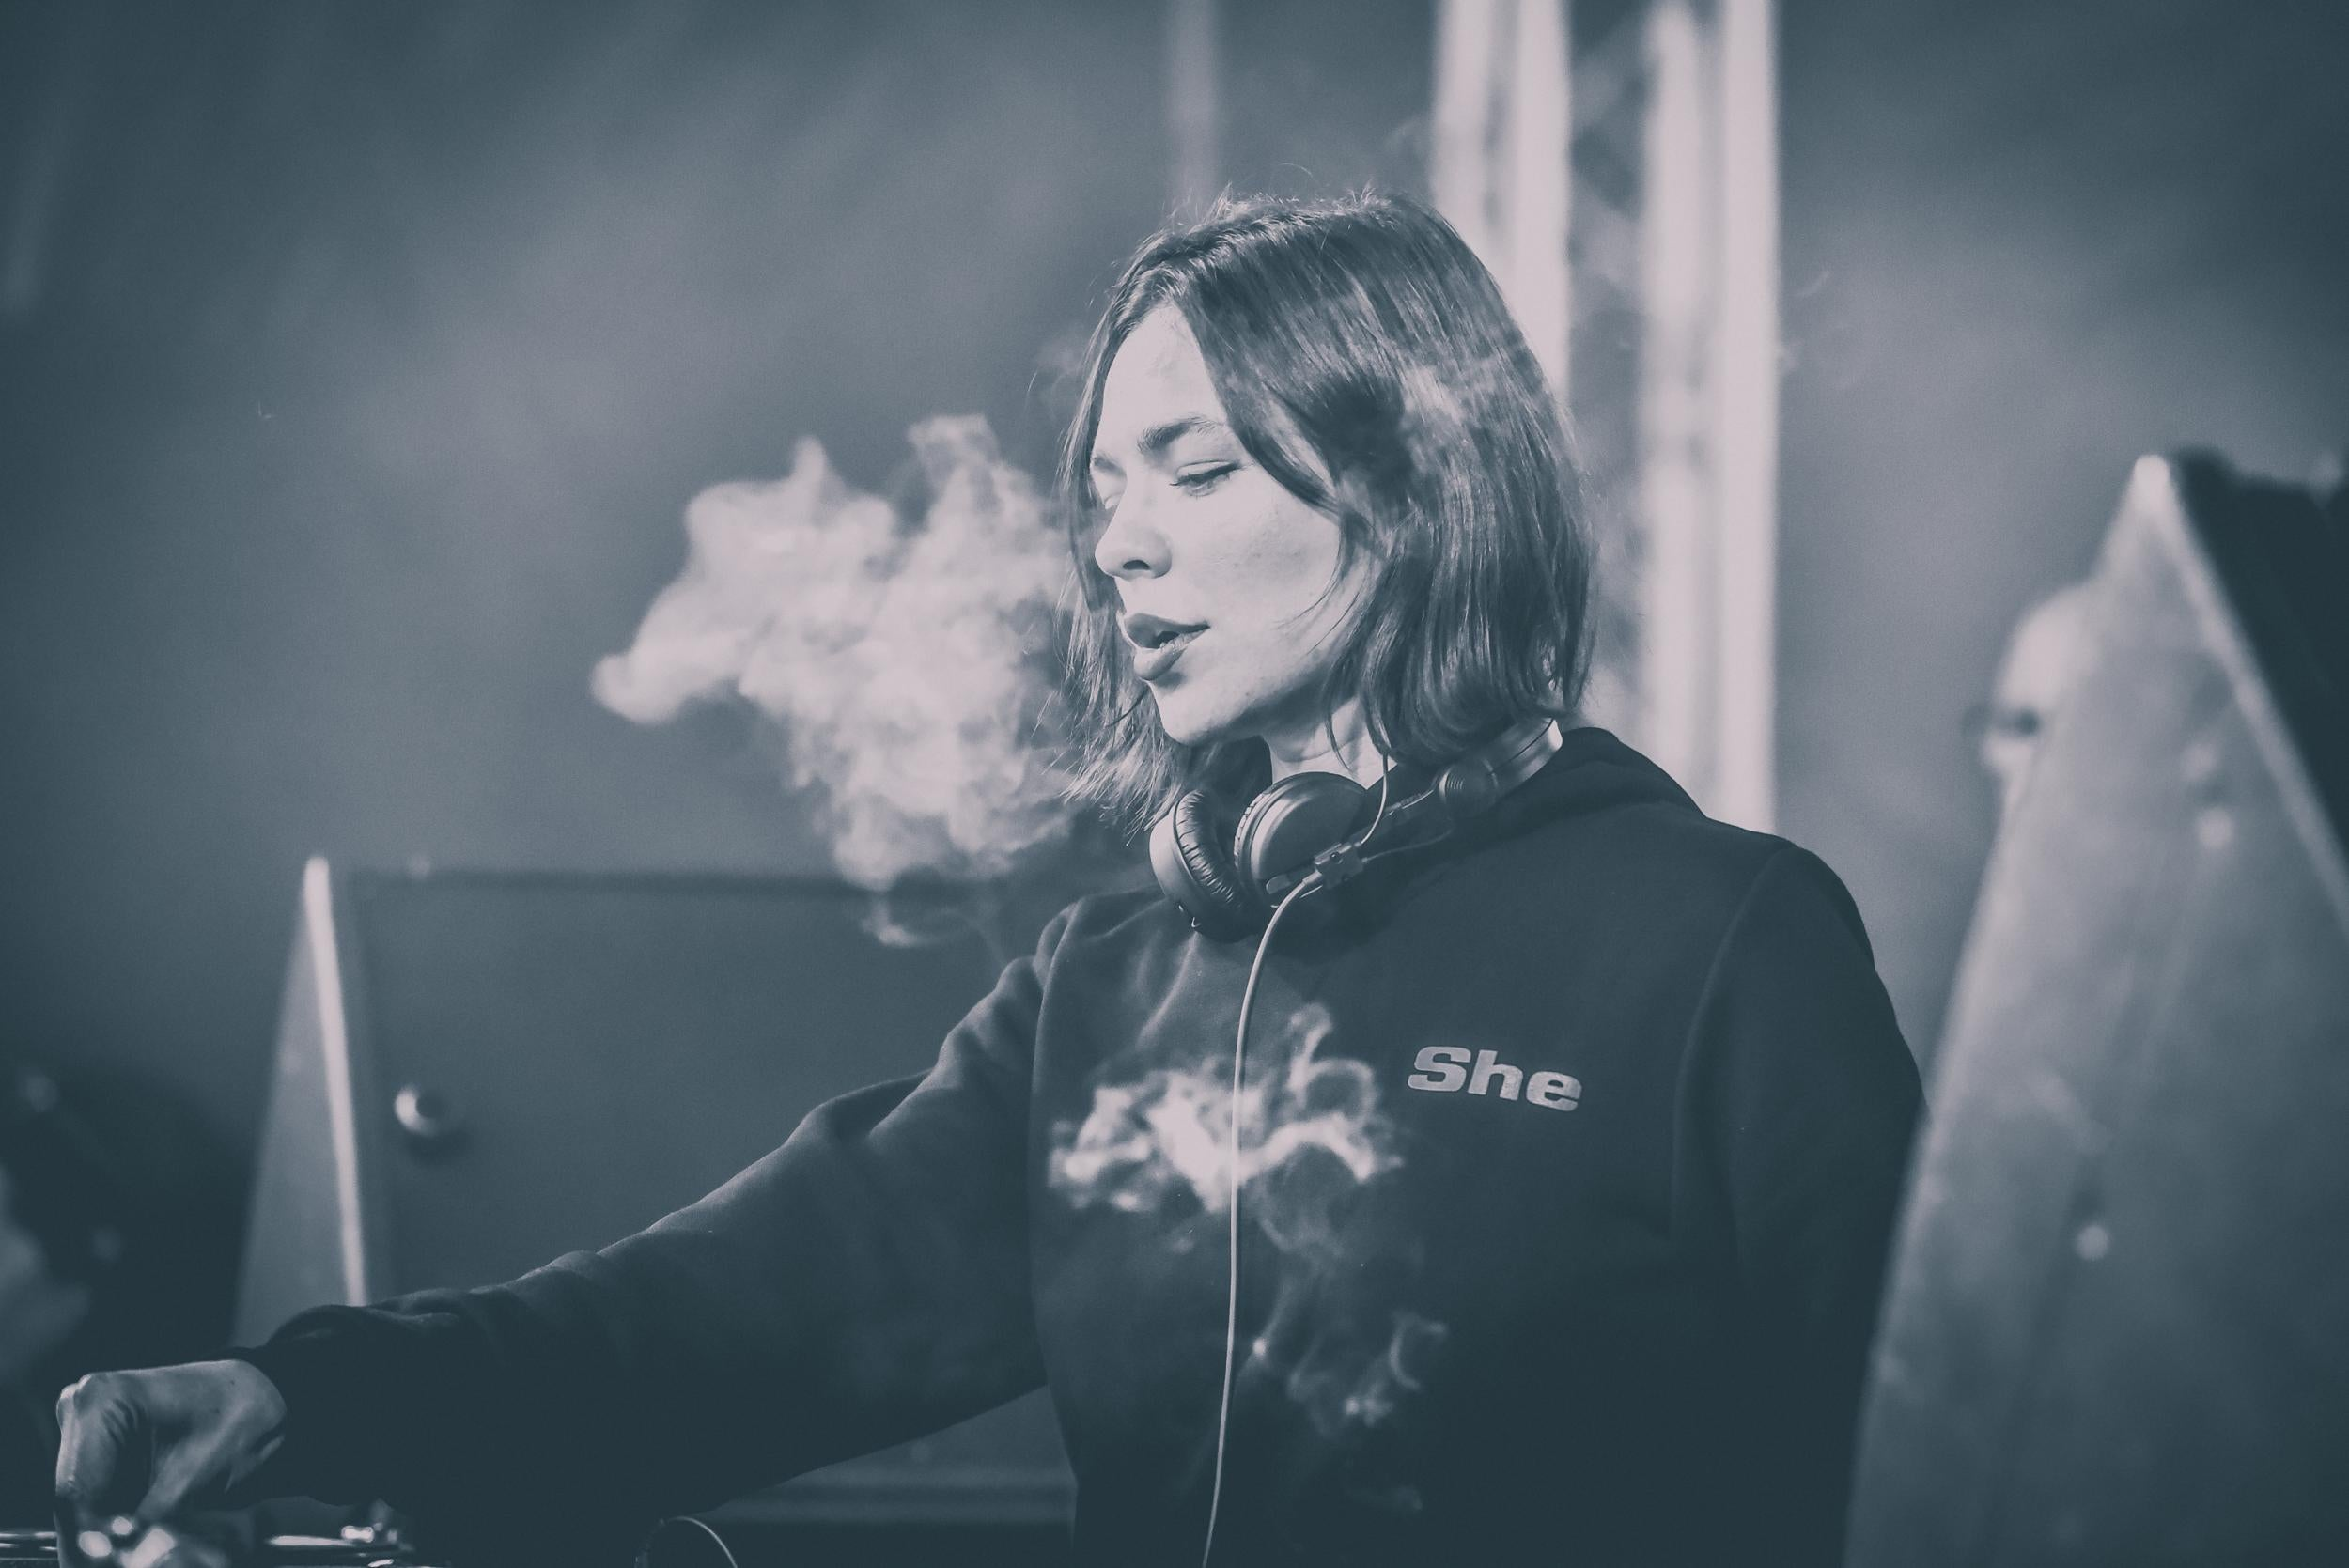 nina-kraviz,-joy-orbison-and-more-join-junction-2-festival-line-up